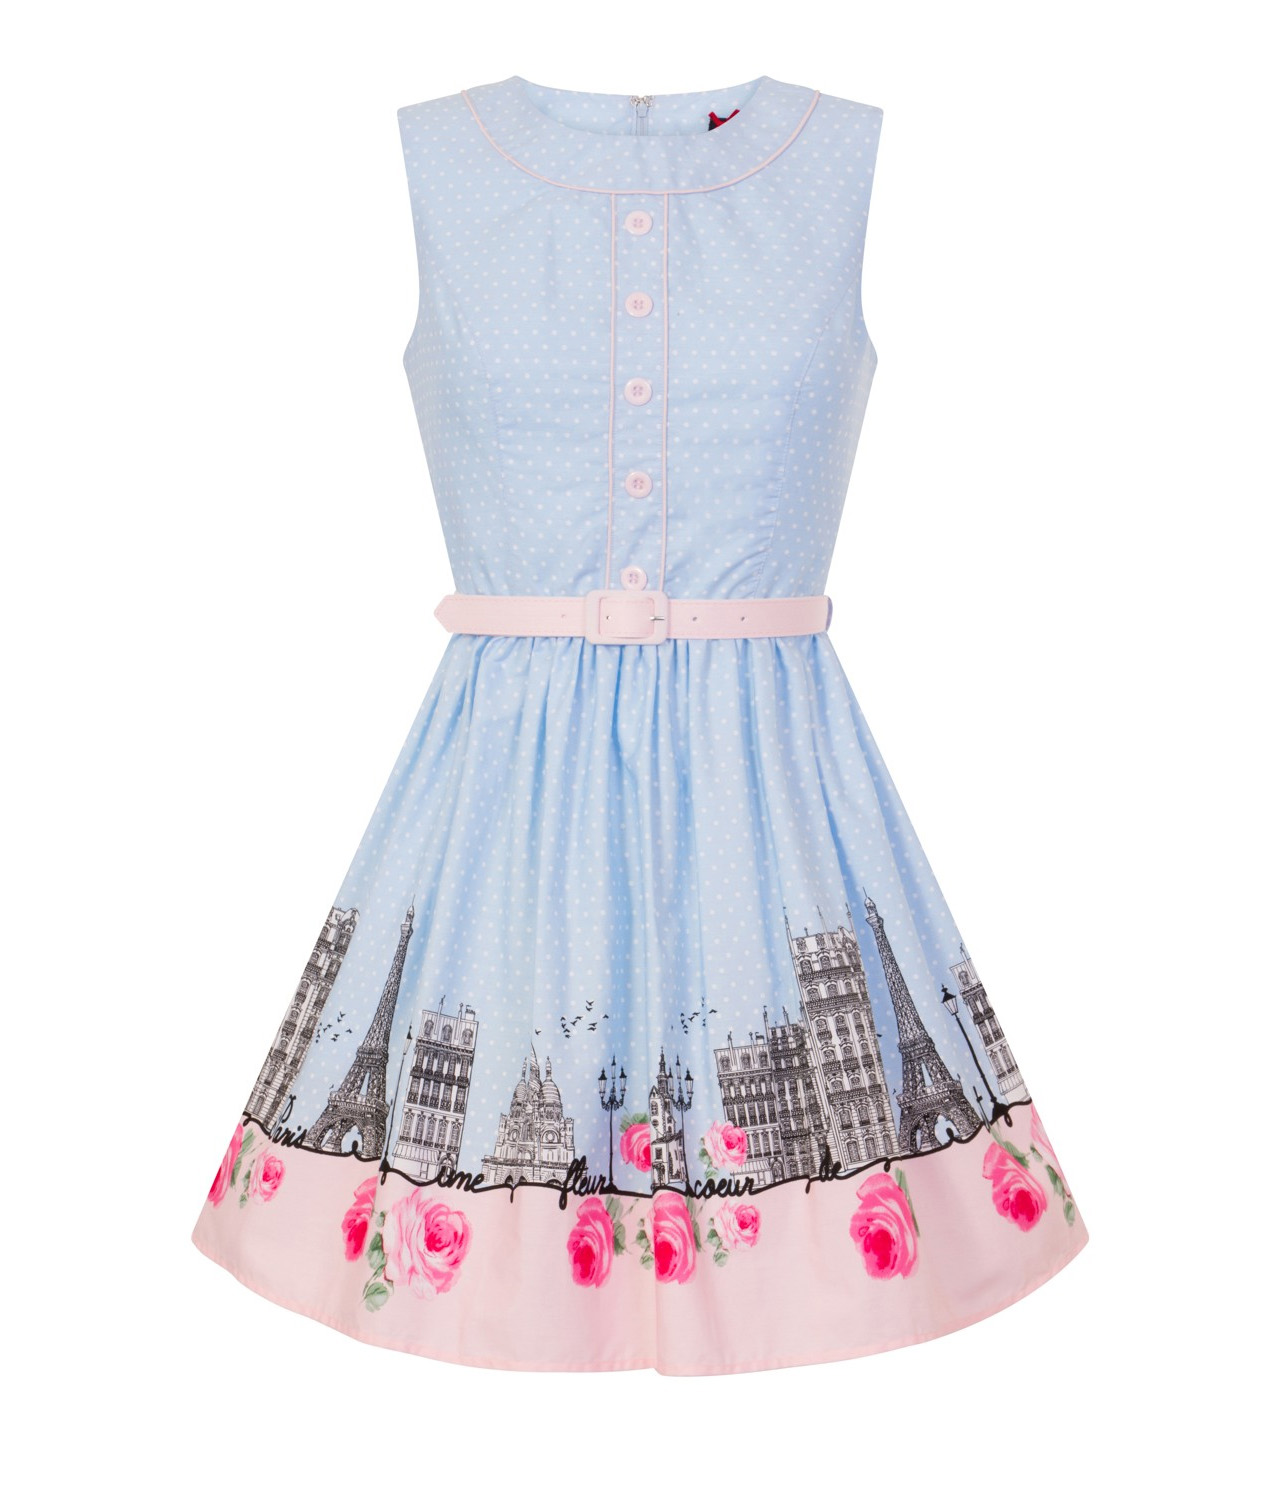 Hell-Bunny-50s-Vintage-Blue-Polka-Dot-PANAME-Mini-Dress-Paris-All-Sizes thumbnail 23